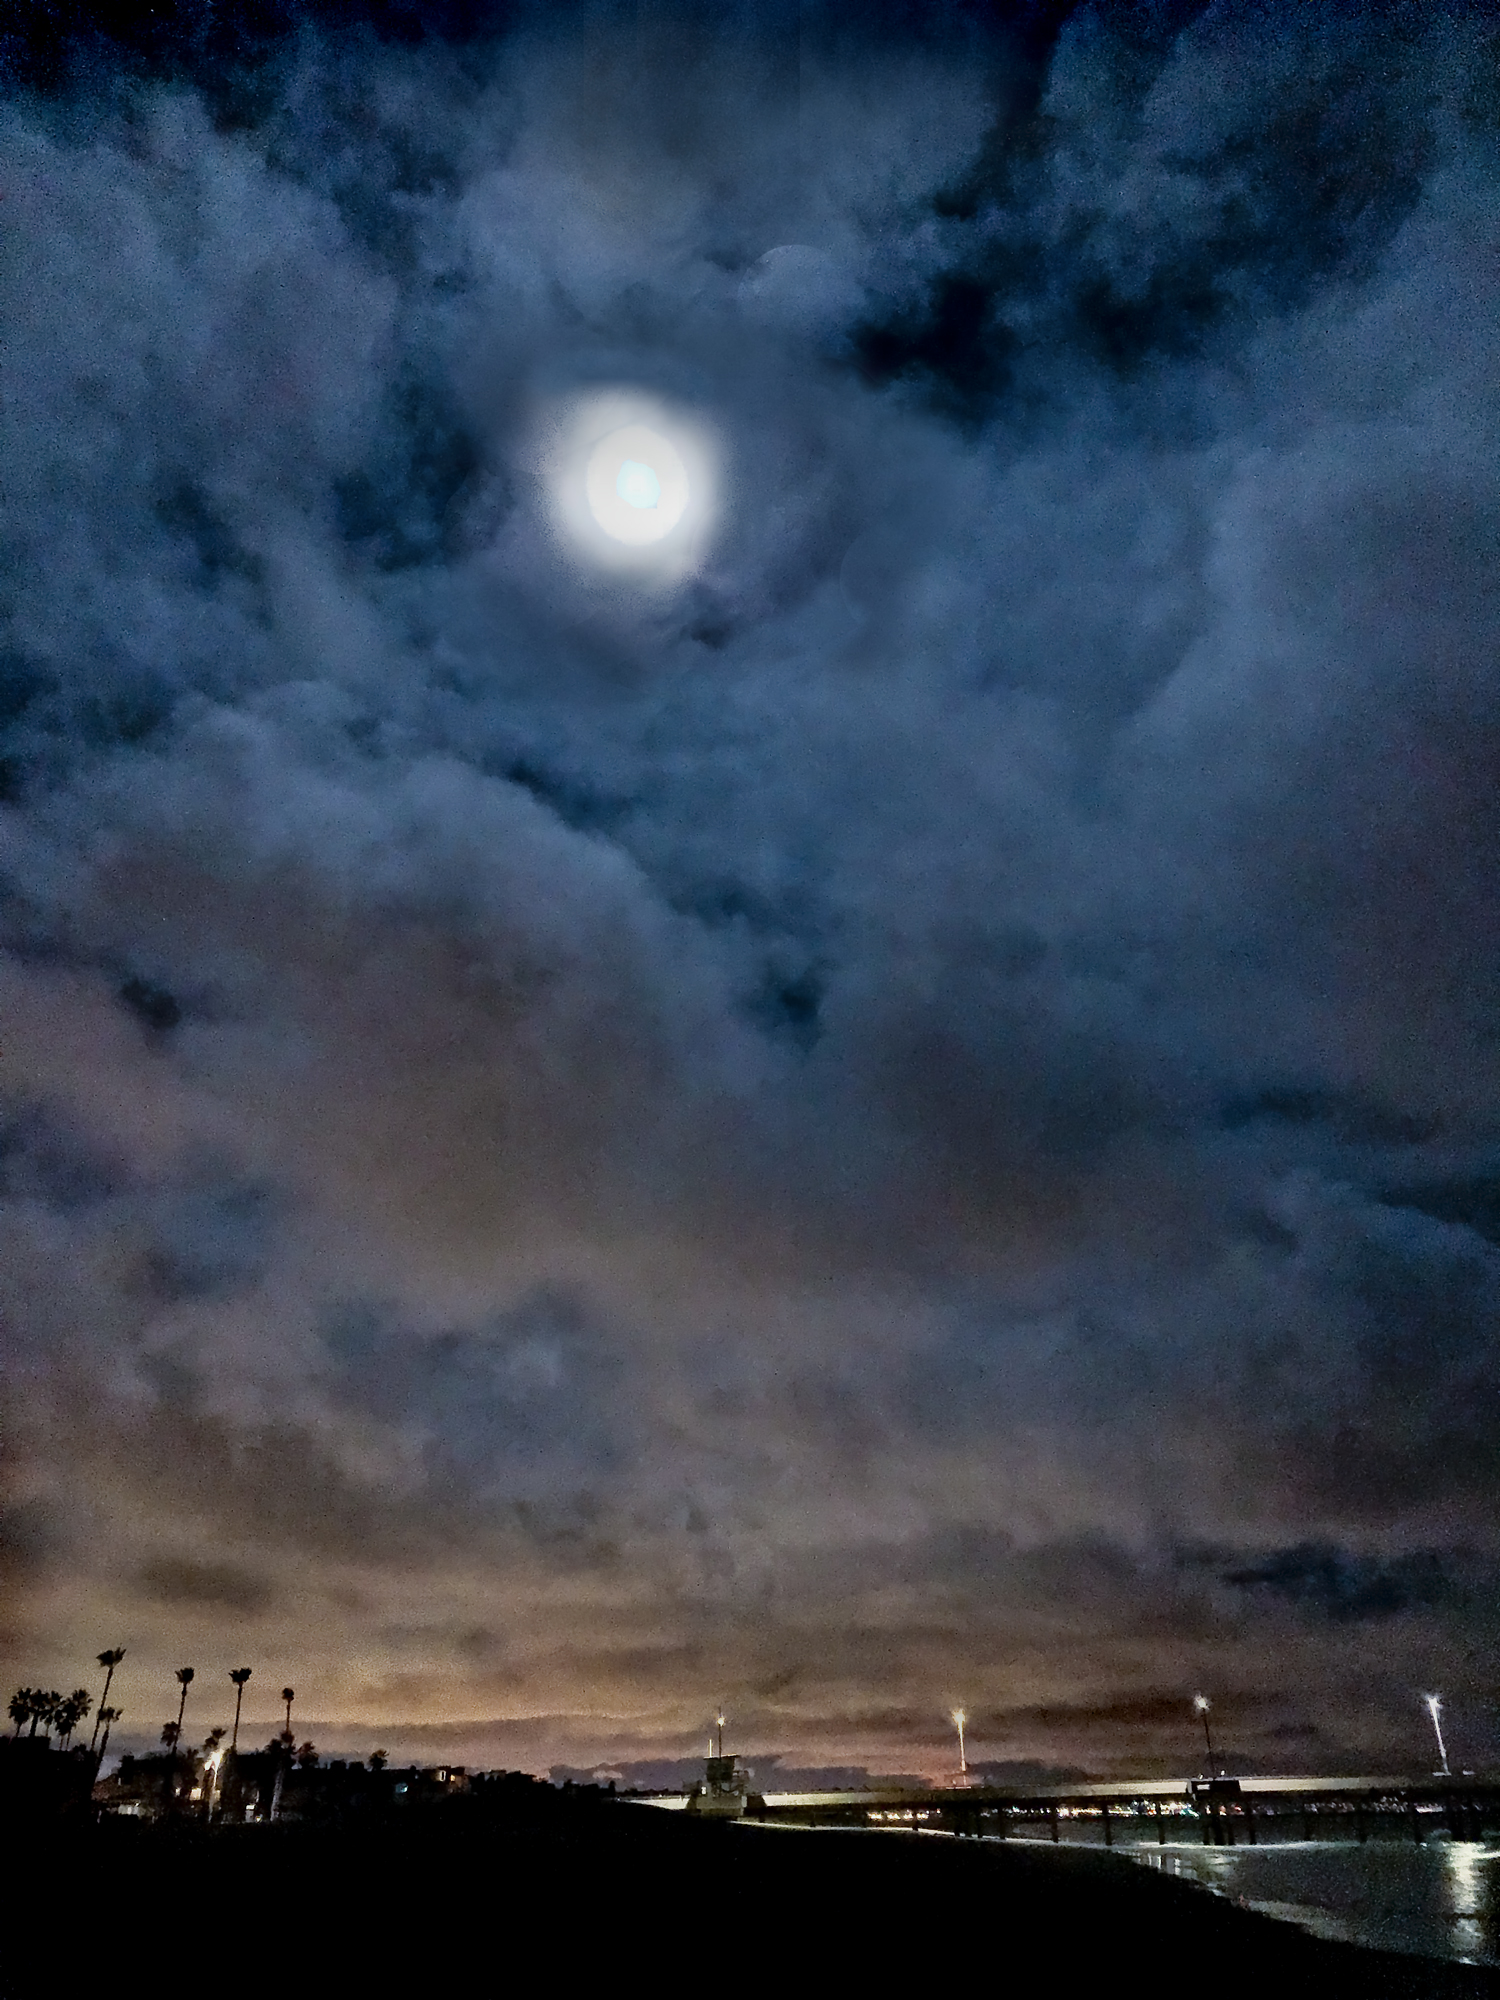 Venice-beach-storm-clouds-and-sky-shot-by-Los-Angeles-corporate-photographer-at-night